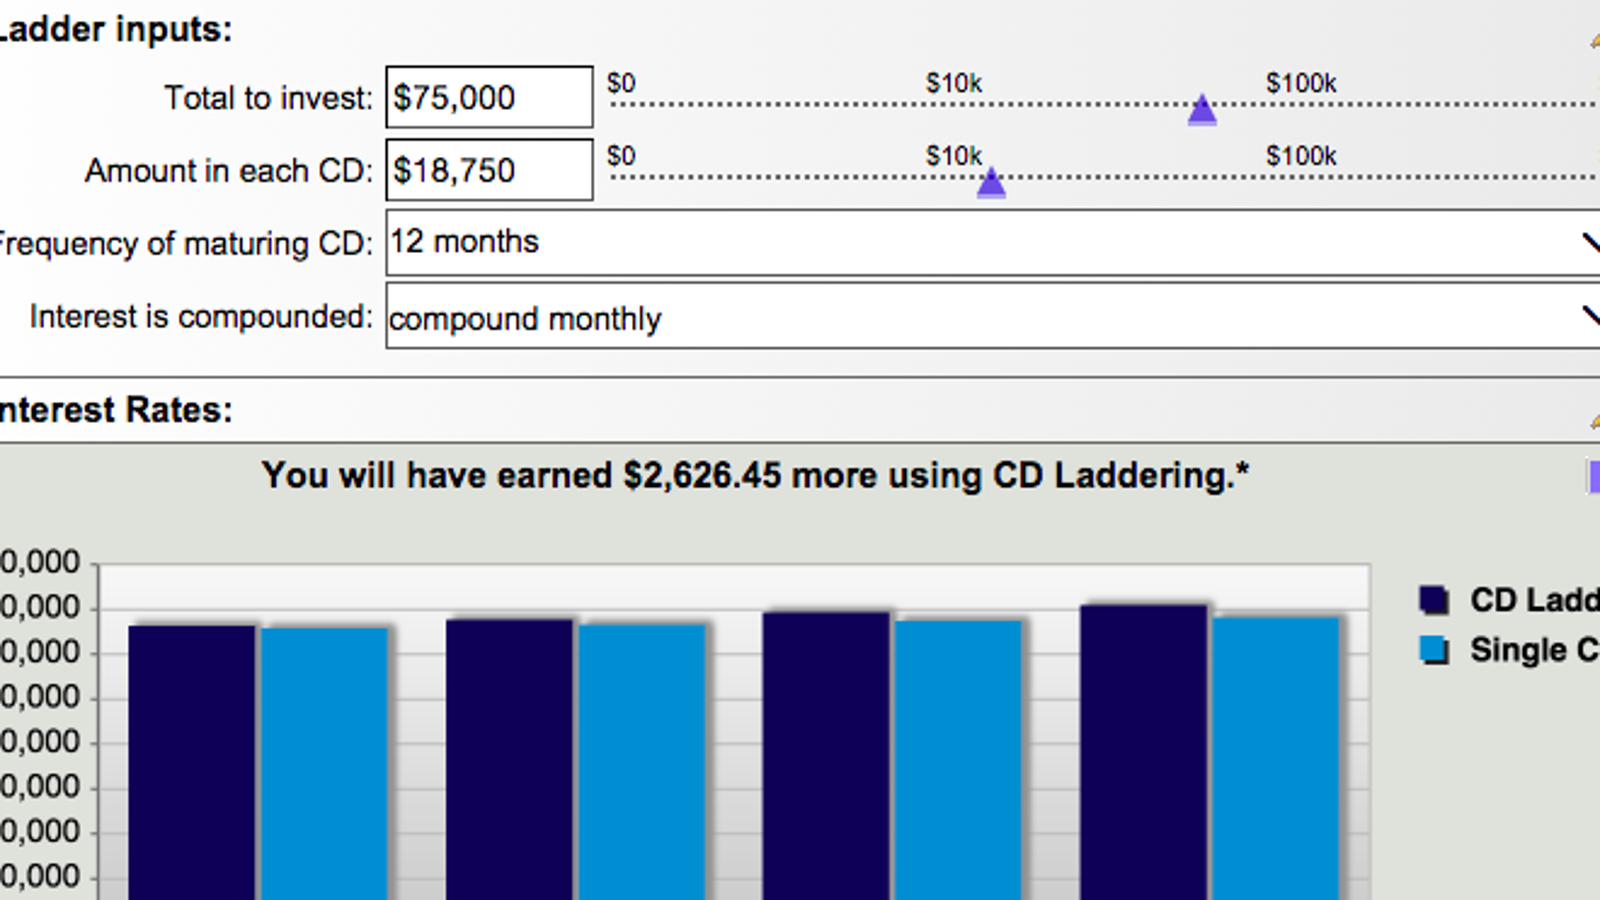 Calculate How Much More You'll Save With a CD Ladder vs  a